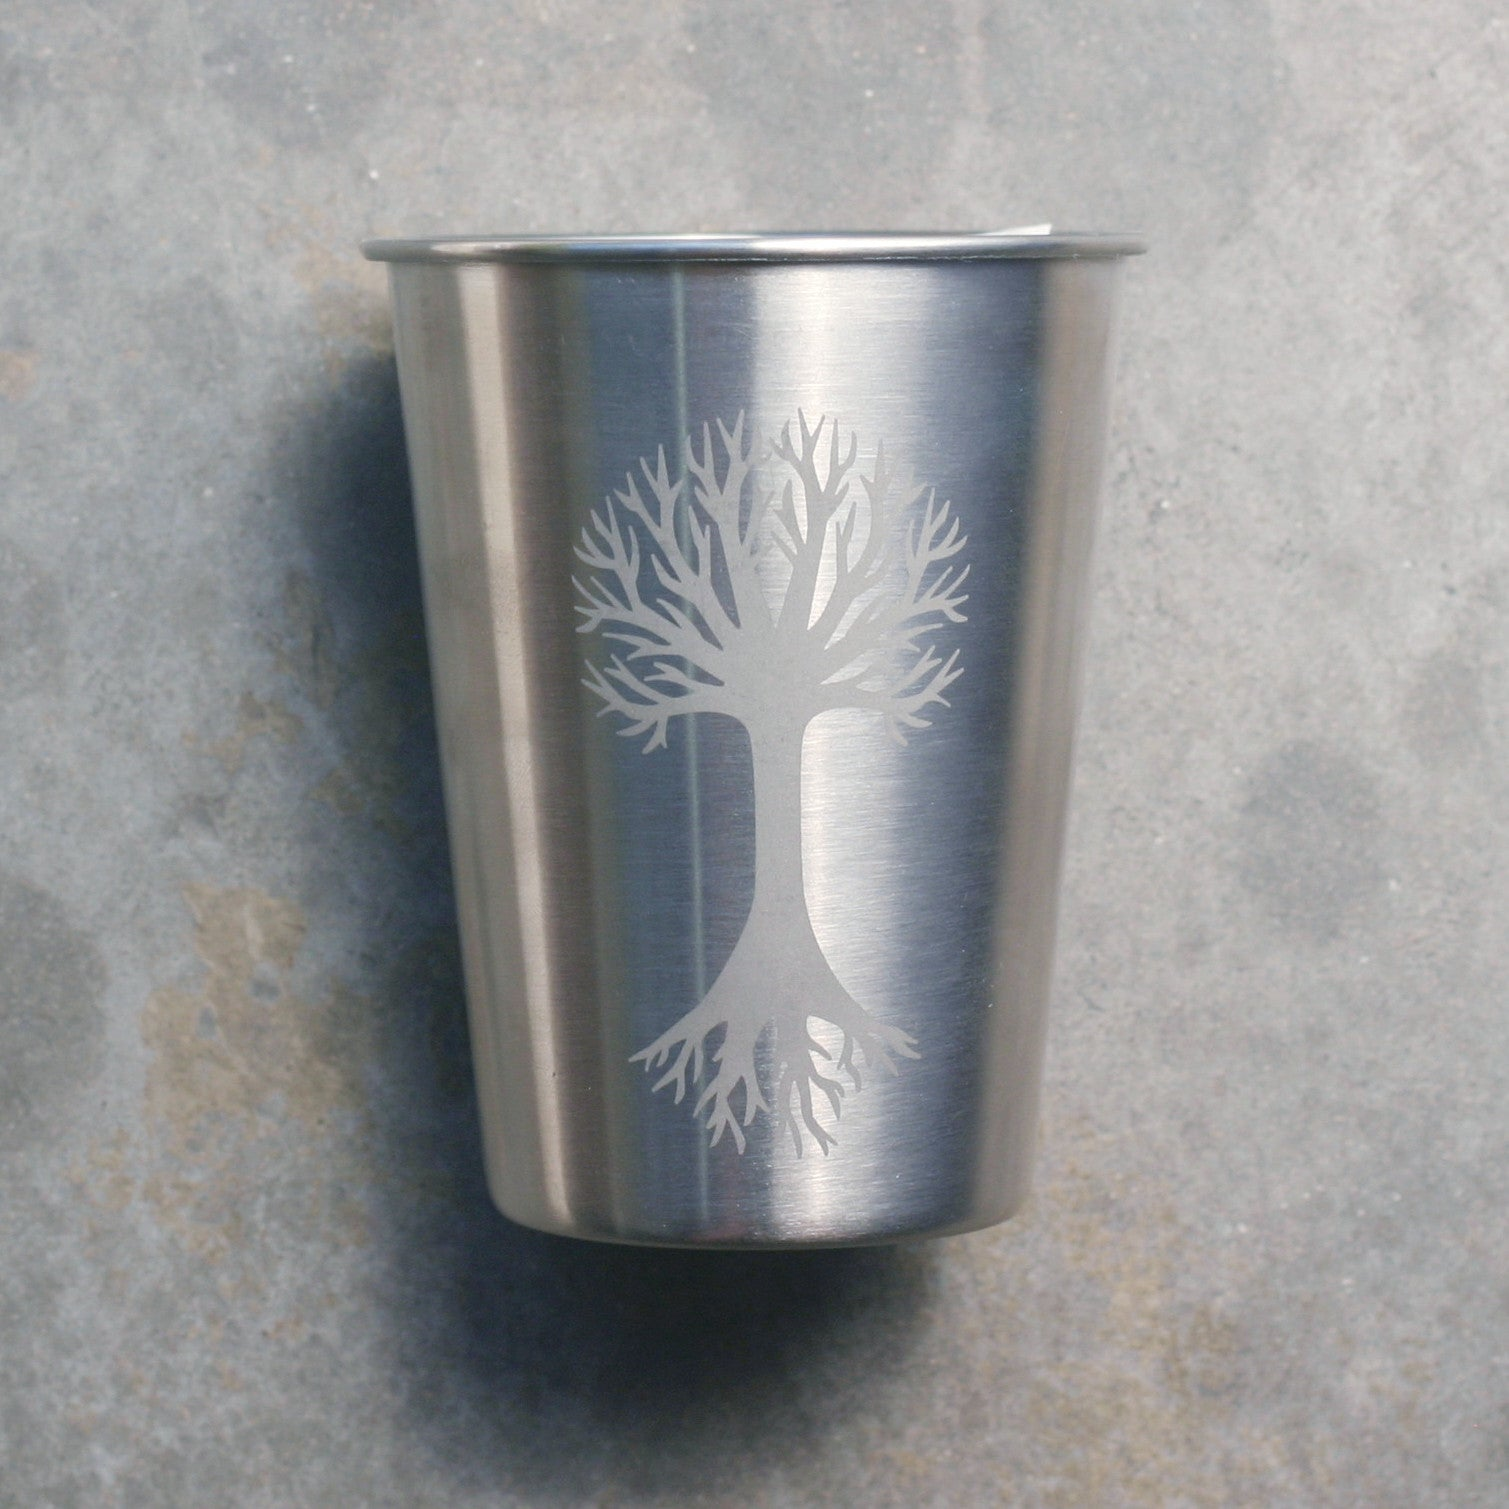 Tree 12oz stainless steel cup